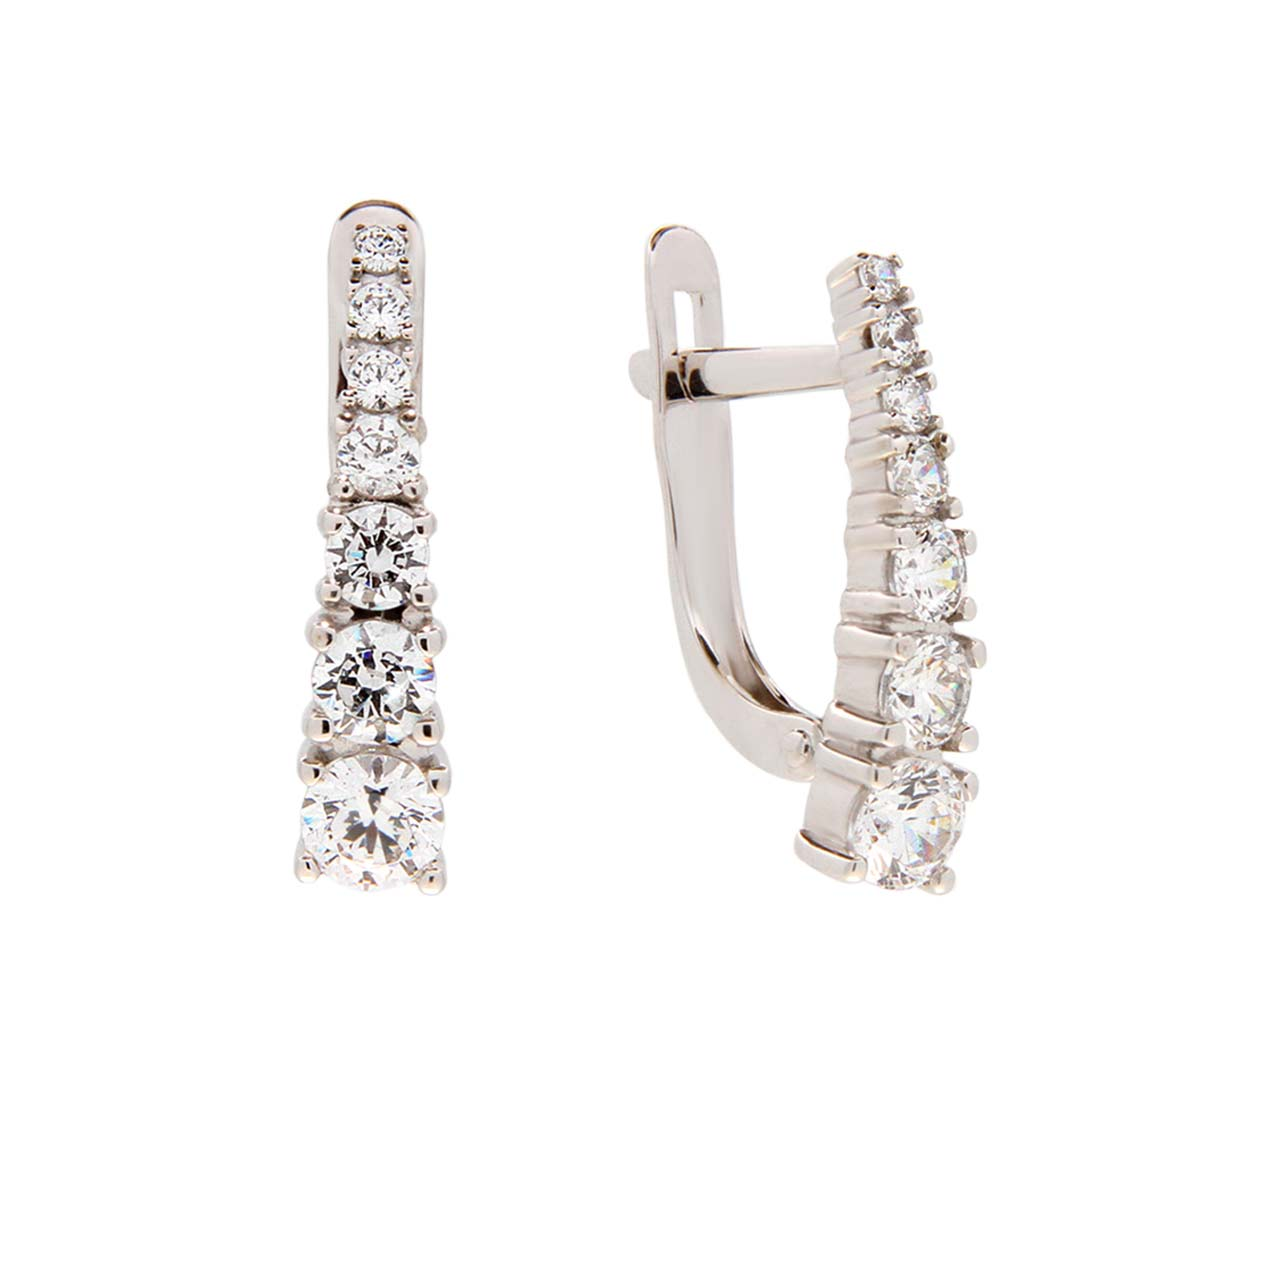 Graduated Swarovski CZ Leverback Earrings